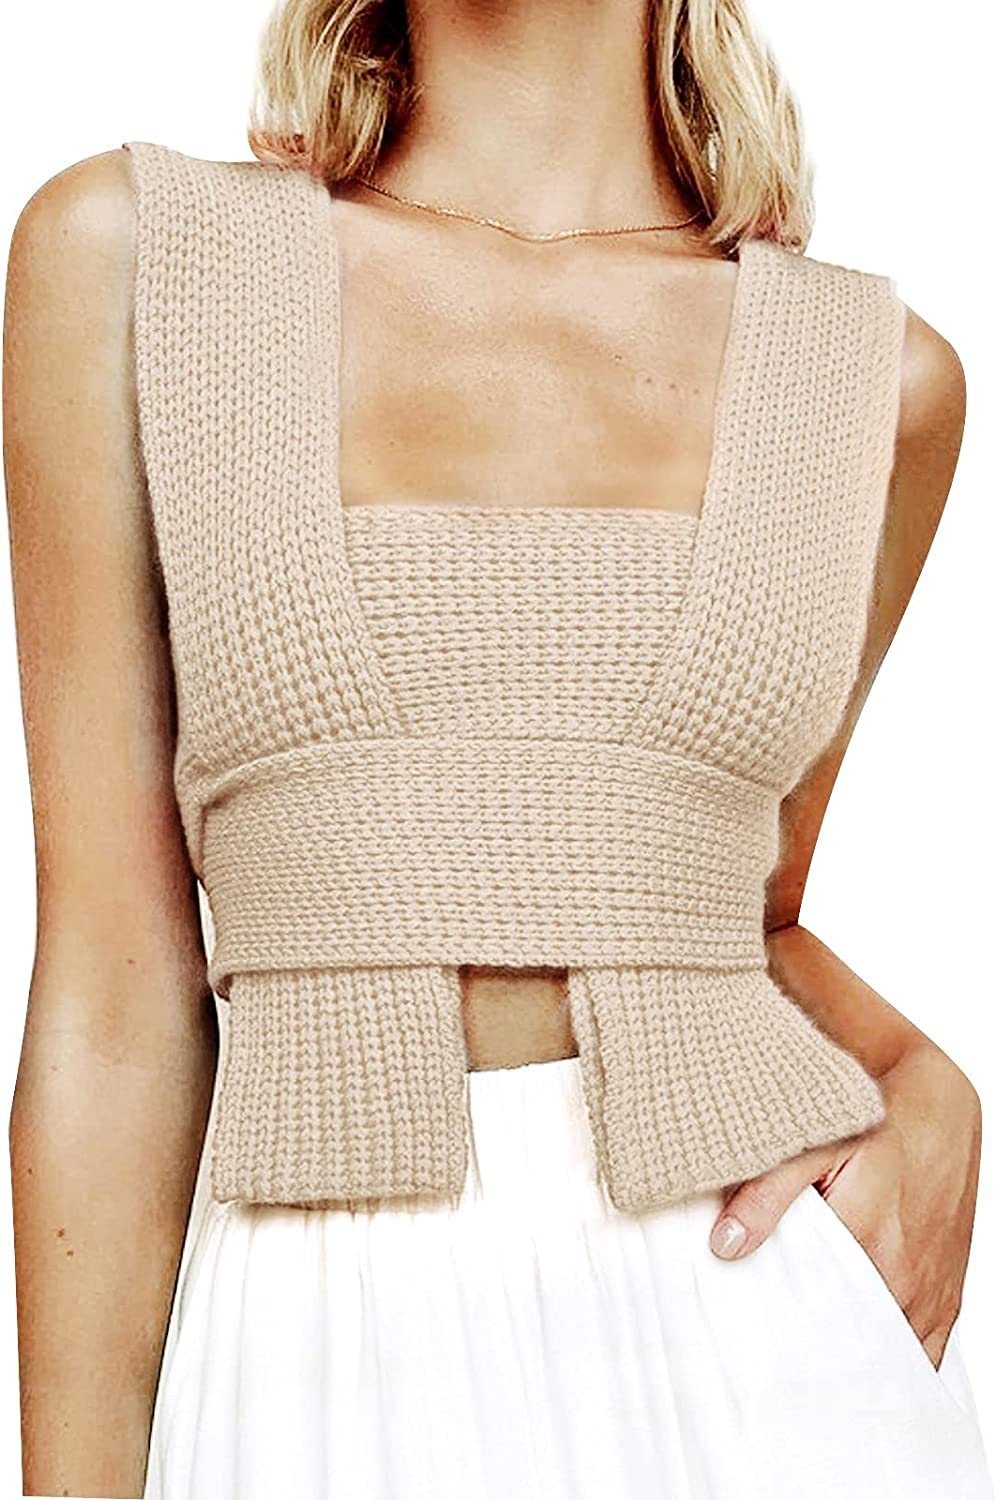 Womens Knit Bandage Tank Tops Sexy Y2K Irregular Sweater Vest Solid Color DIY Criss Cross Knitwear Blouse